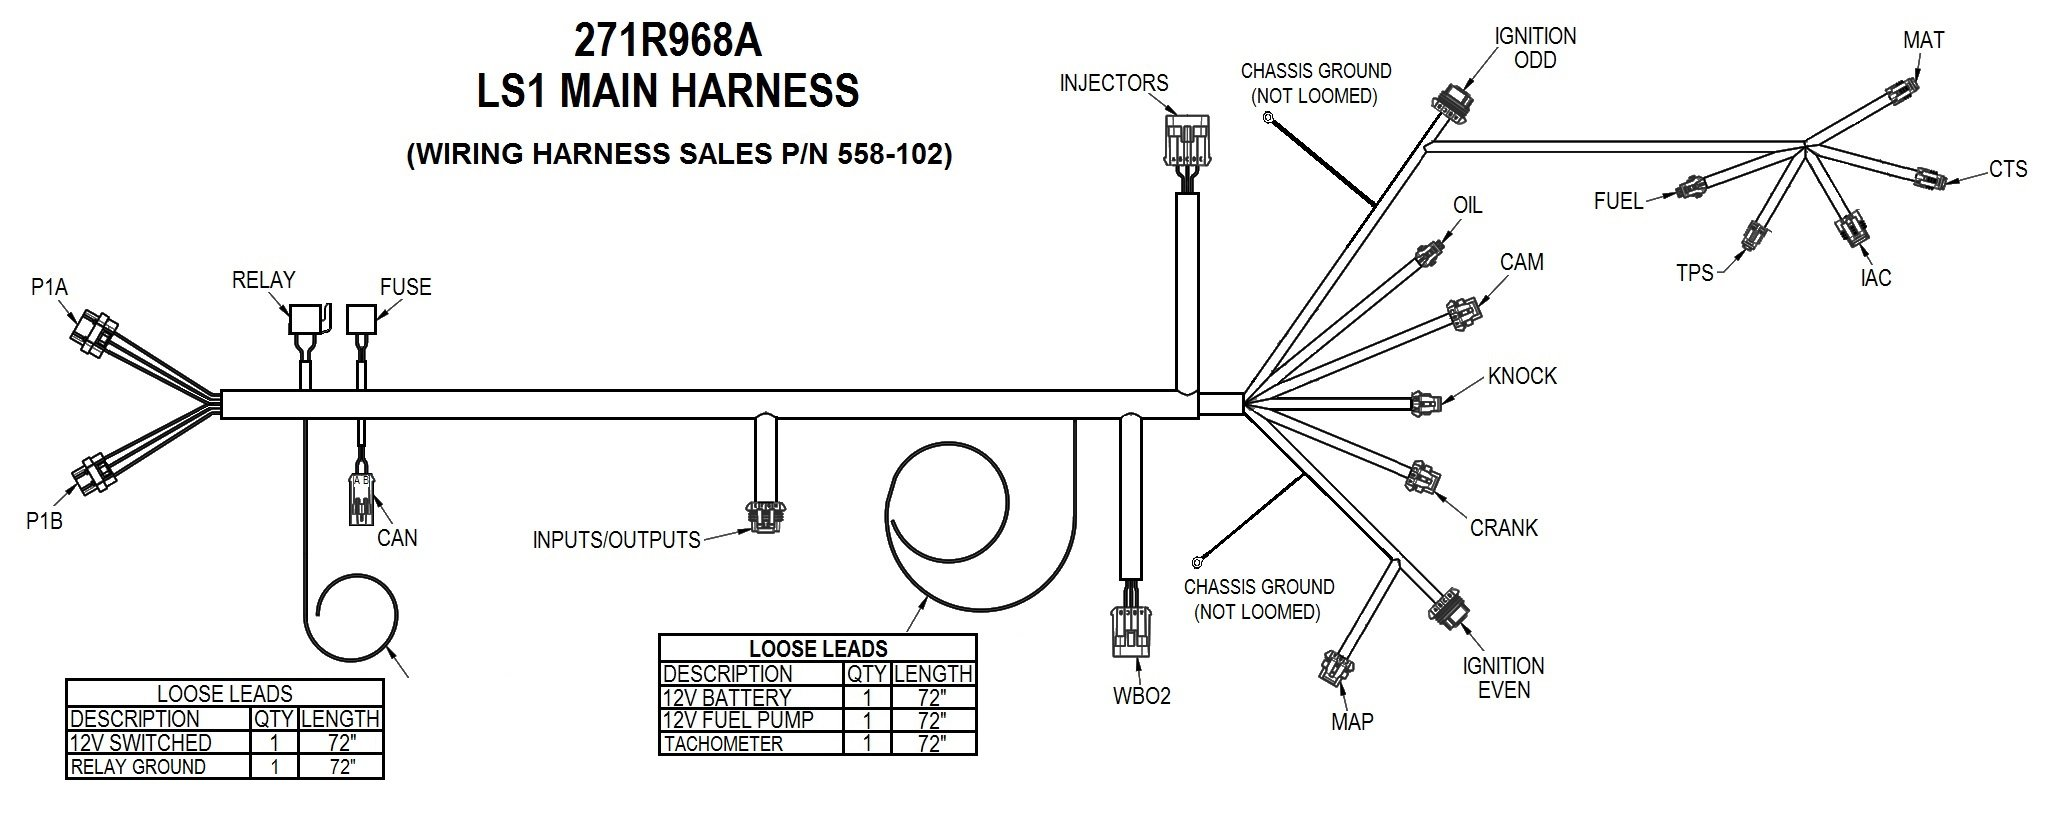 ls1 wiring harness diagram holley efi 558 102 ls1 6  24x 1x  engine main harness  holley efi 558 102 ls1 6  24x 1x